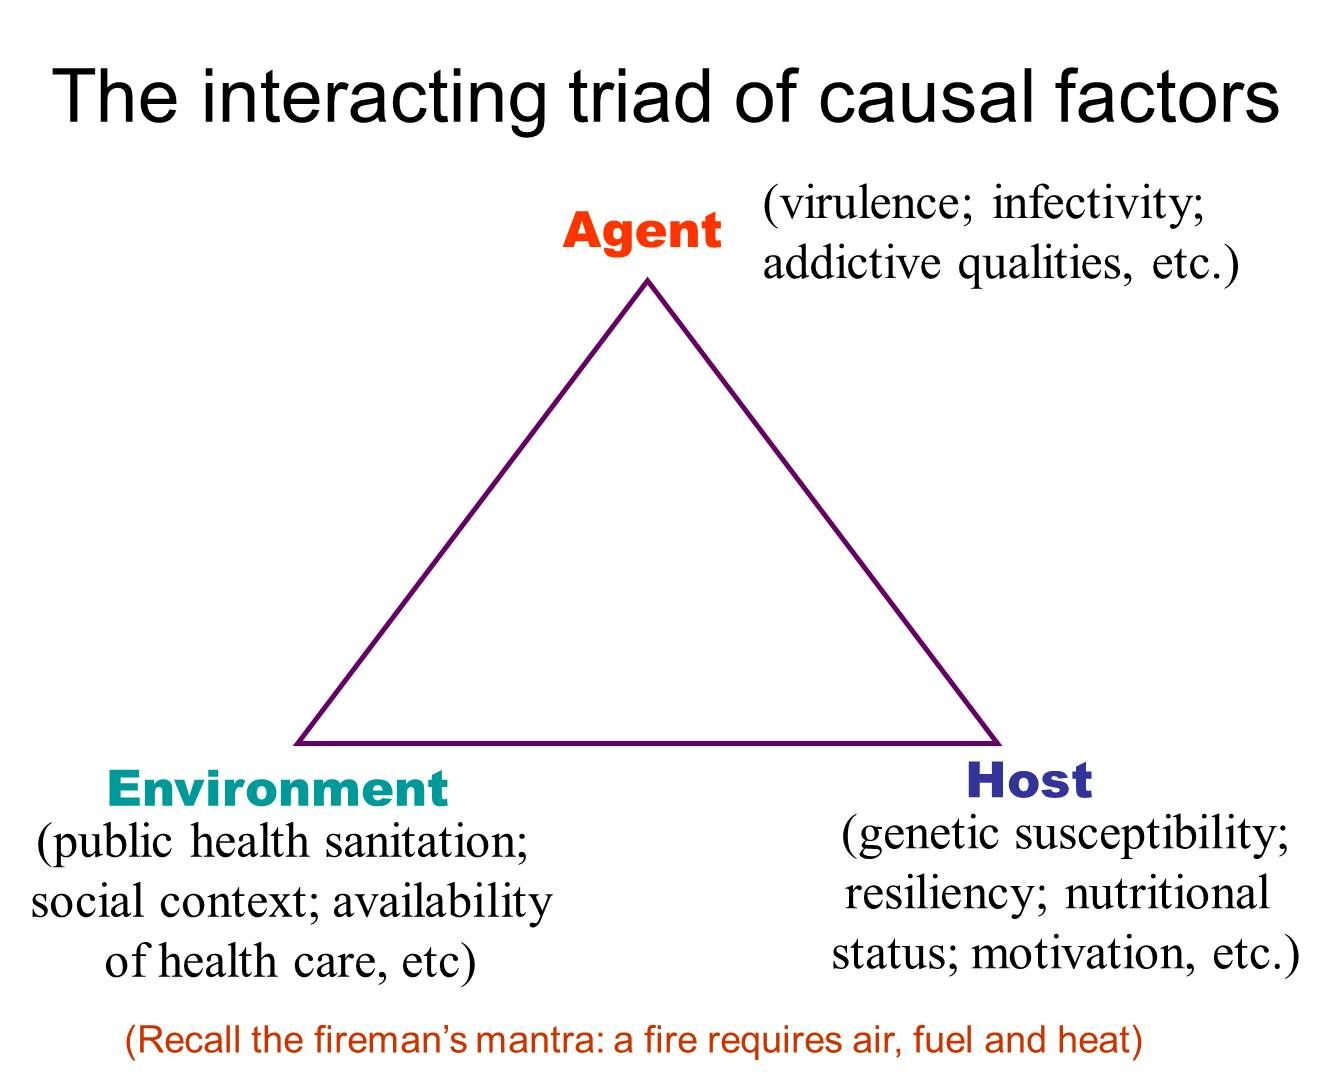 What is triangle of epidemiology in relation to obesity